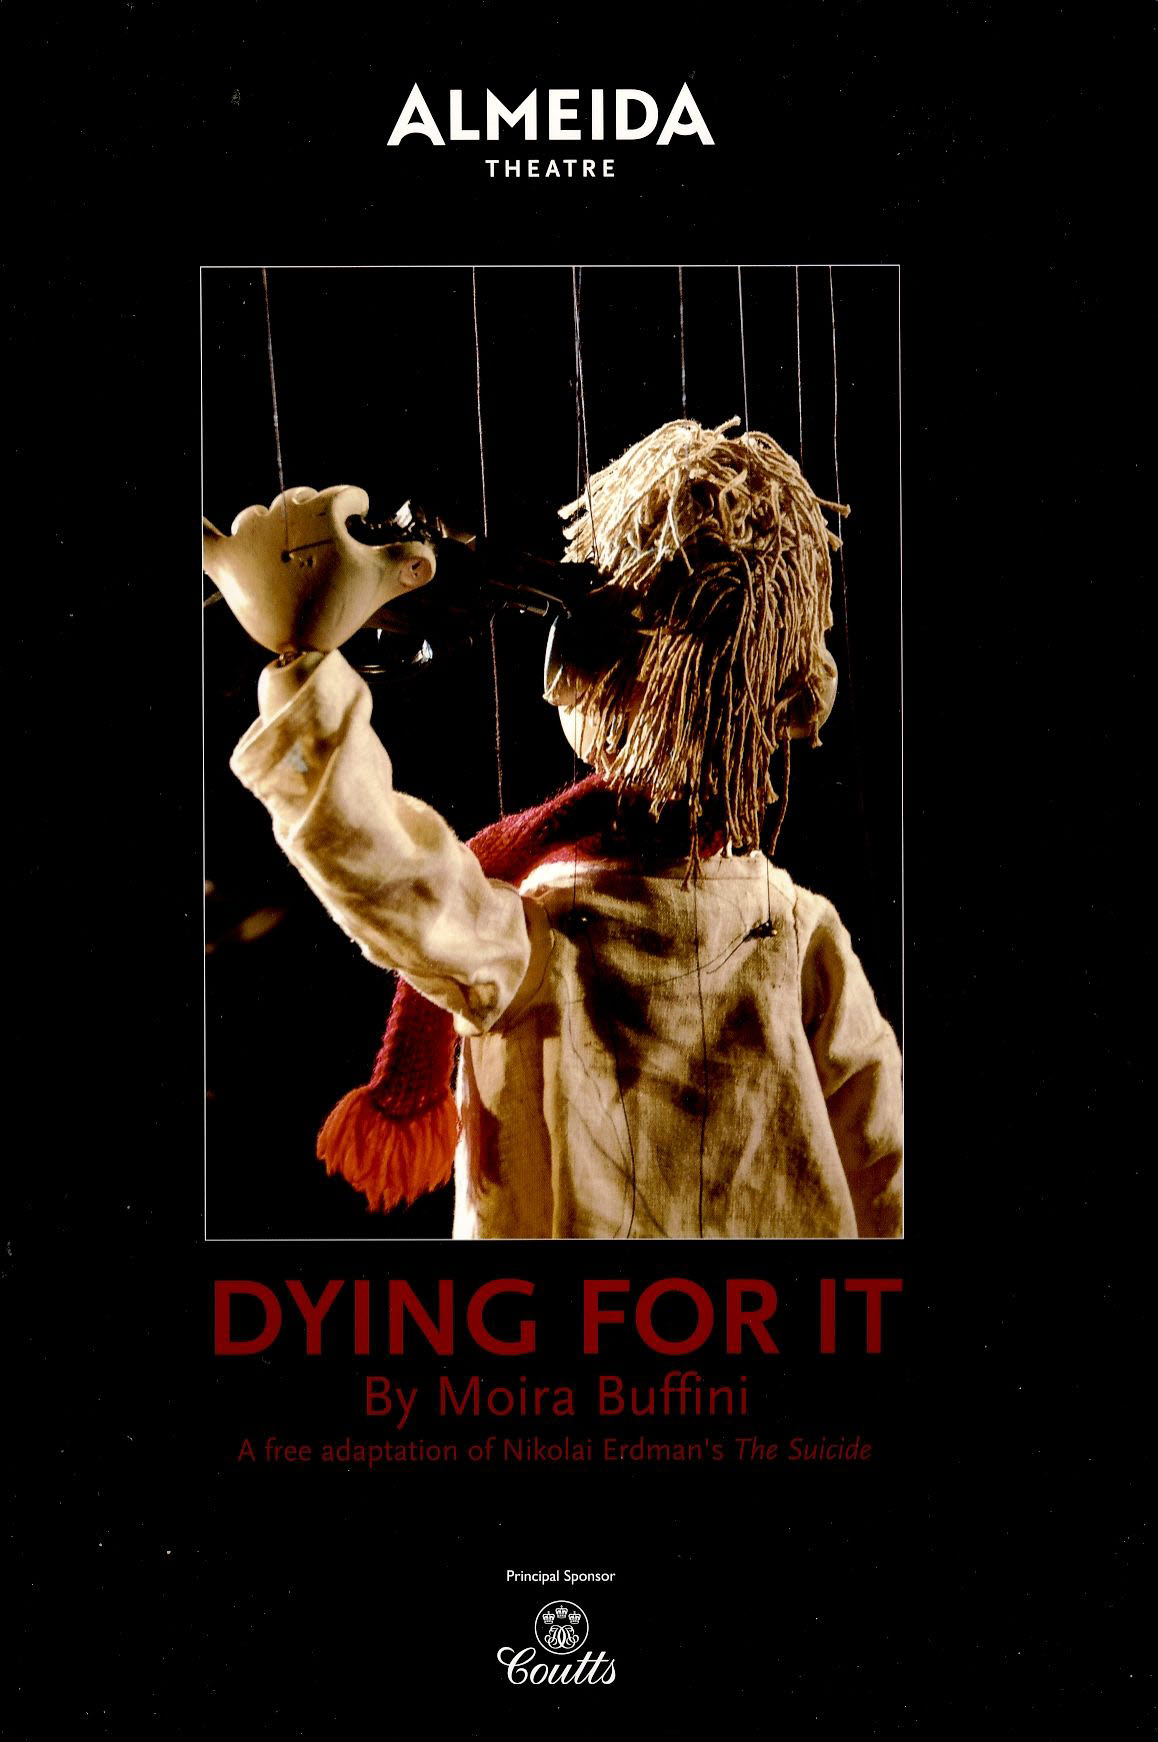 DYING FOR IT by Moira Buffini 2007 ALMEIDA Theatre Programme refb1370 Measures approx 20cm x 29cm.